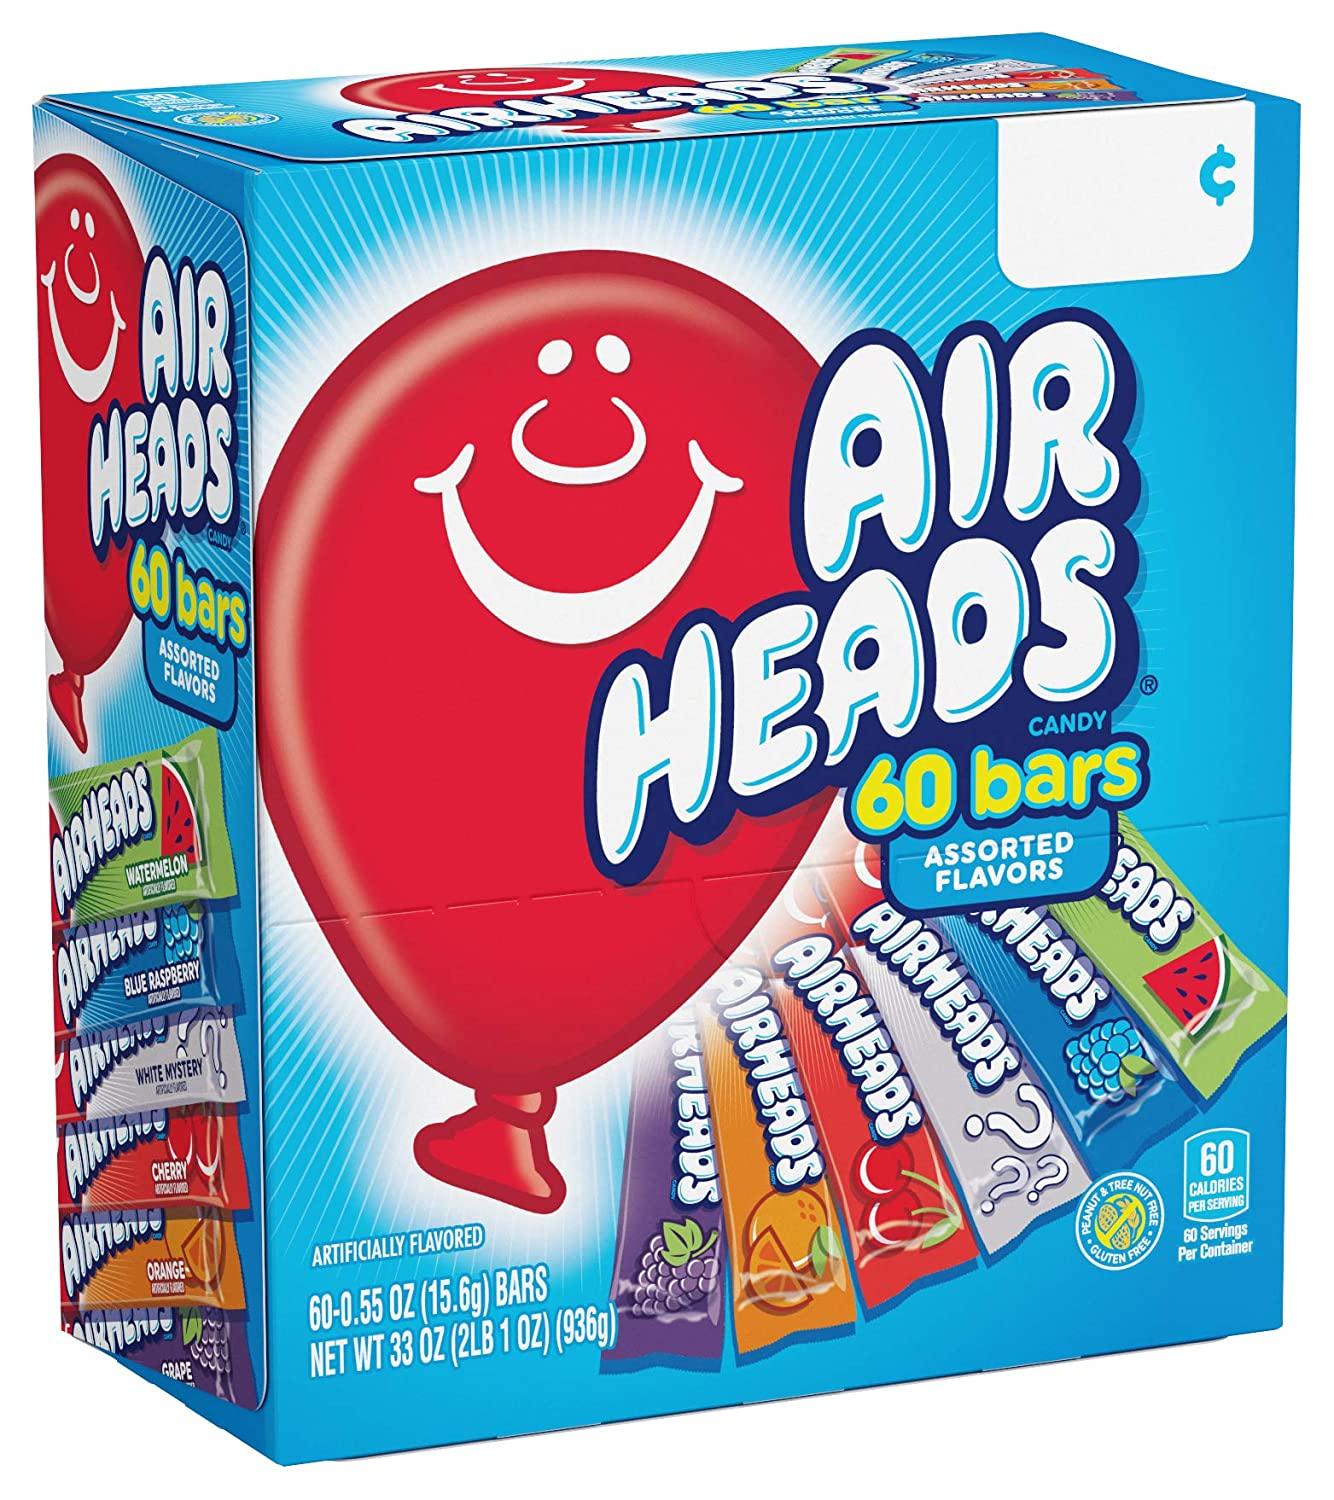 Airheads Candy Bars, Variety Bulk Box, Chewy Full Size Fruit Taffy, Gifts, Easter Candy Basket, Non Melting, Party, 60 Count (Packaging May Vary)